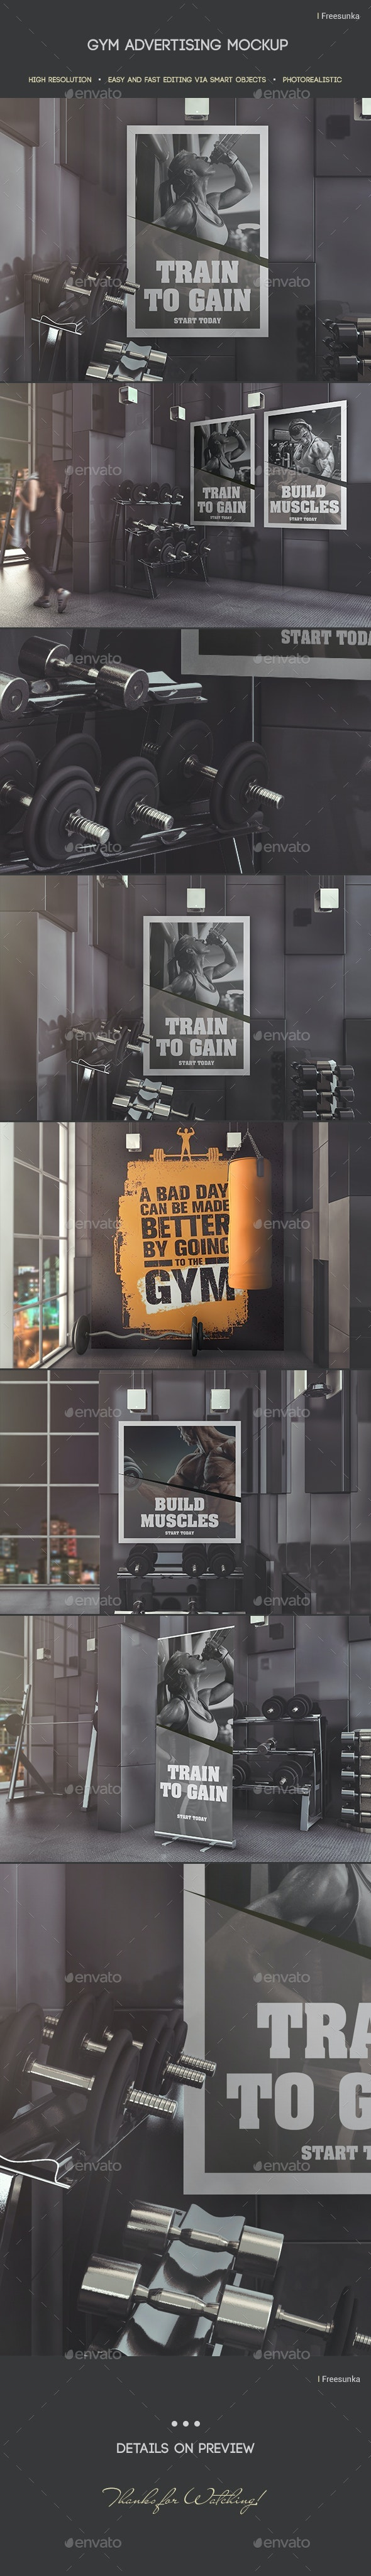 Gym Advertising Mockup - Posters Print